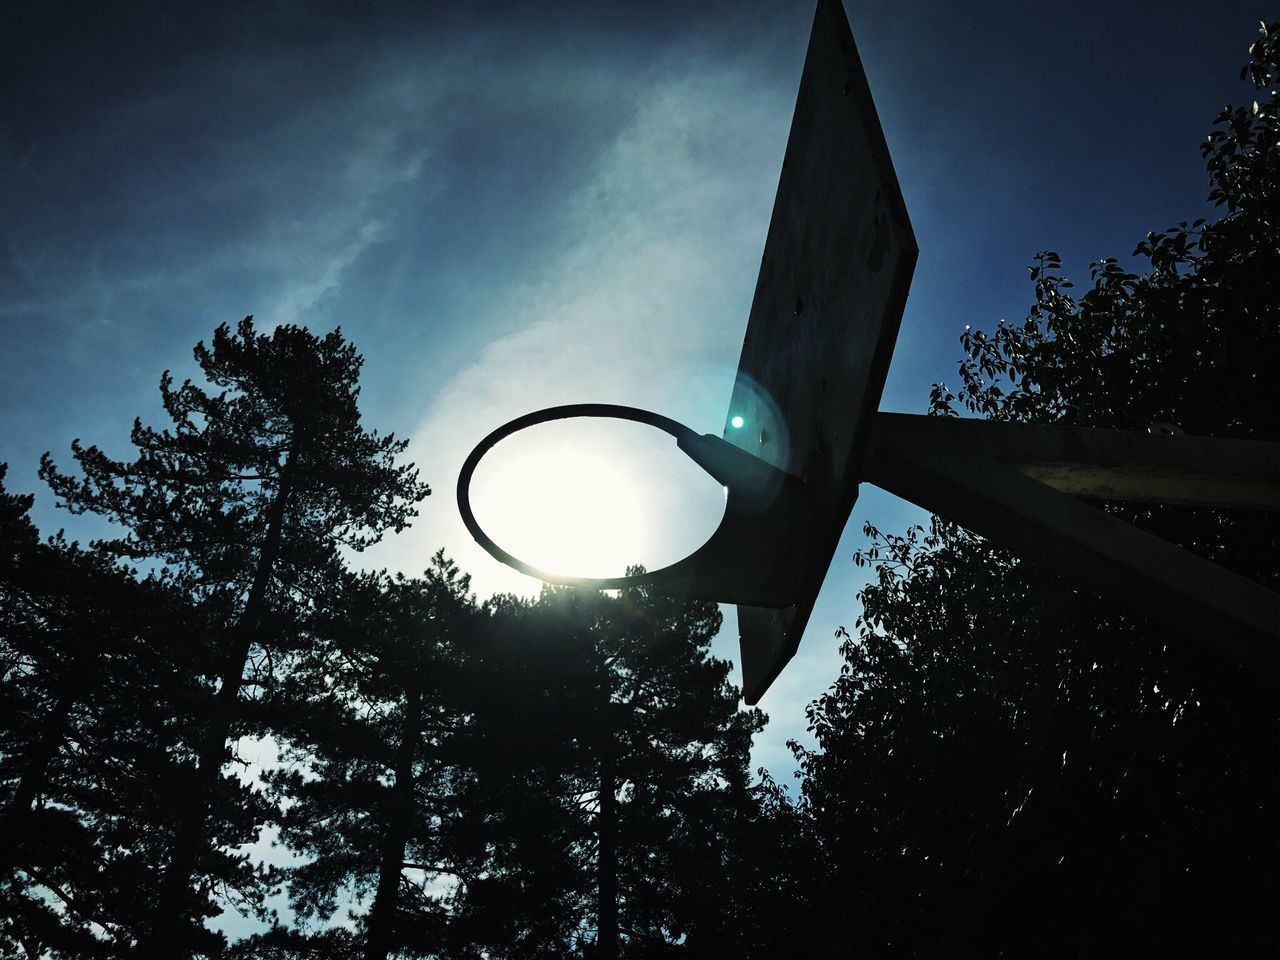 Tree Low Angle View Sky No People Silhouette Outdoors Day Basketball Hoop Basketball Sun Glare No Net